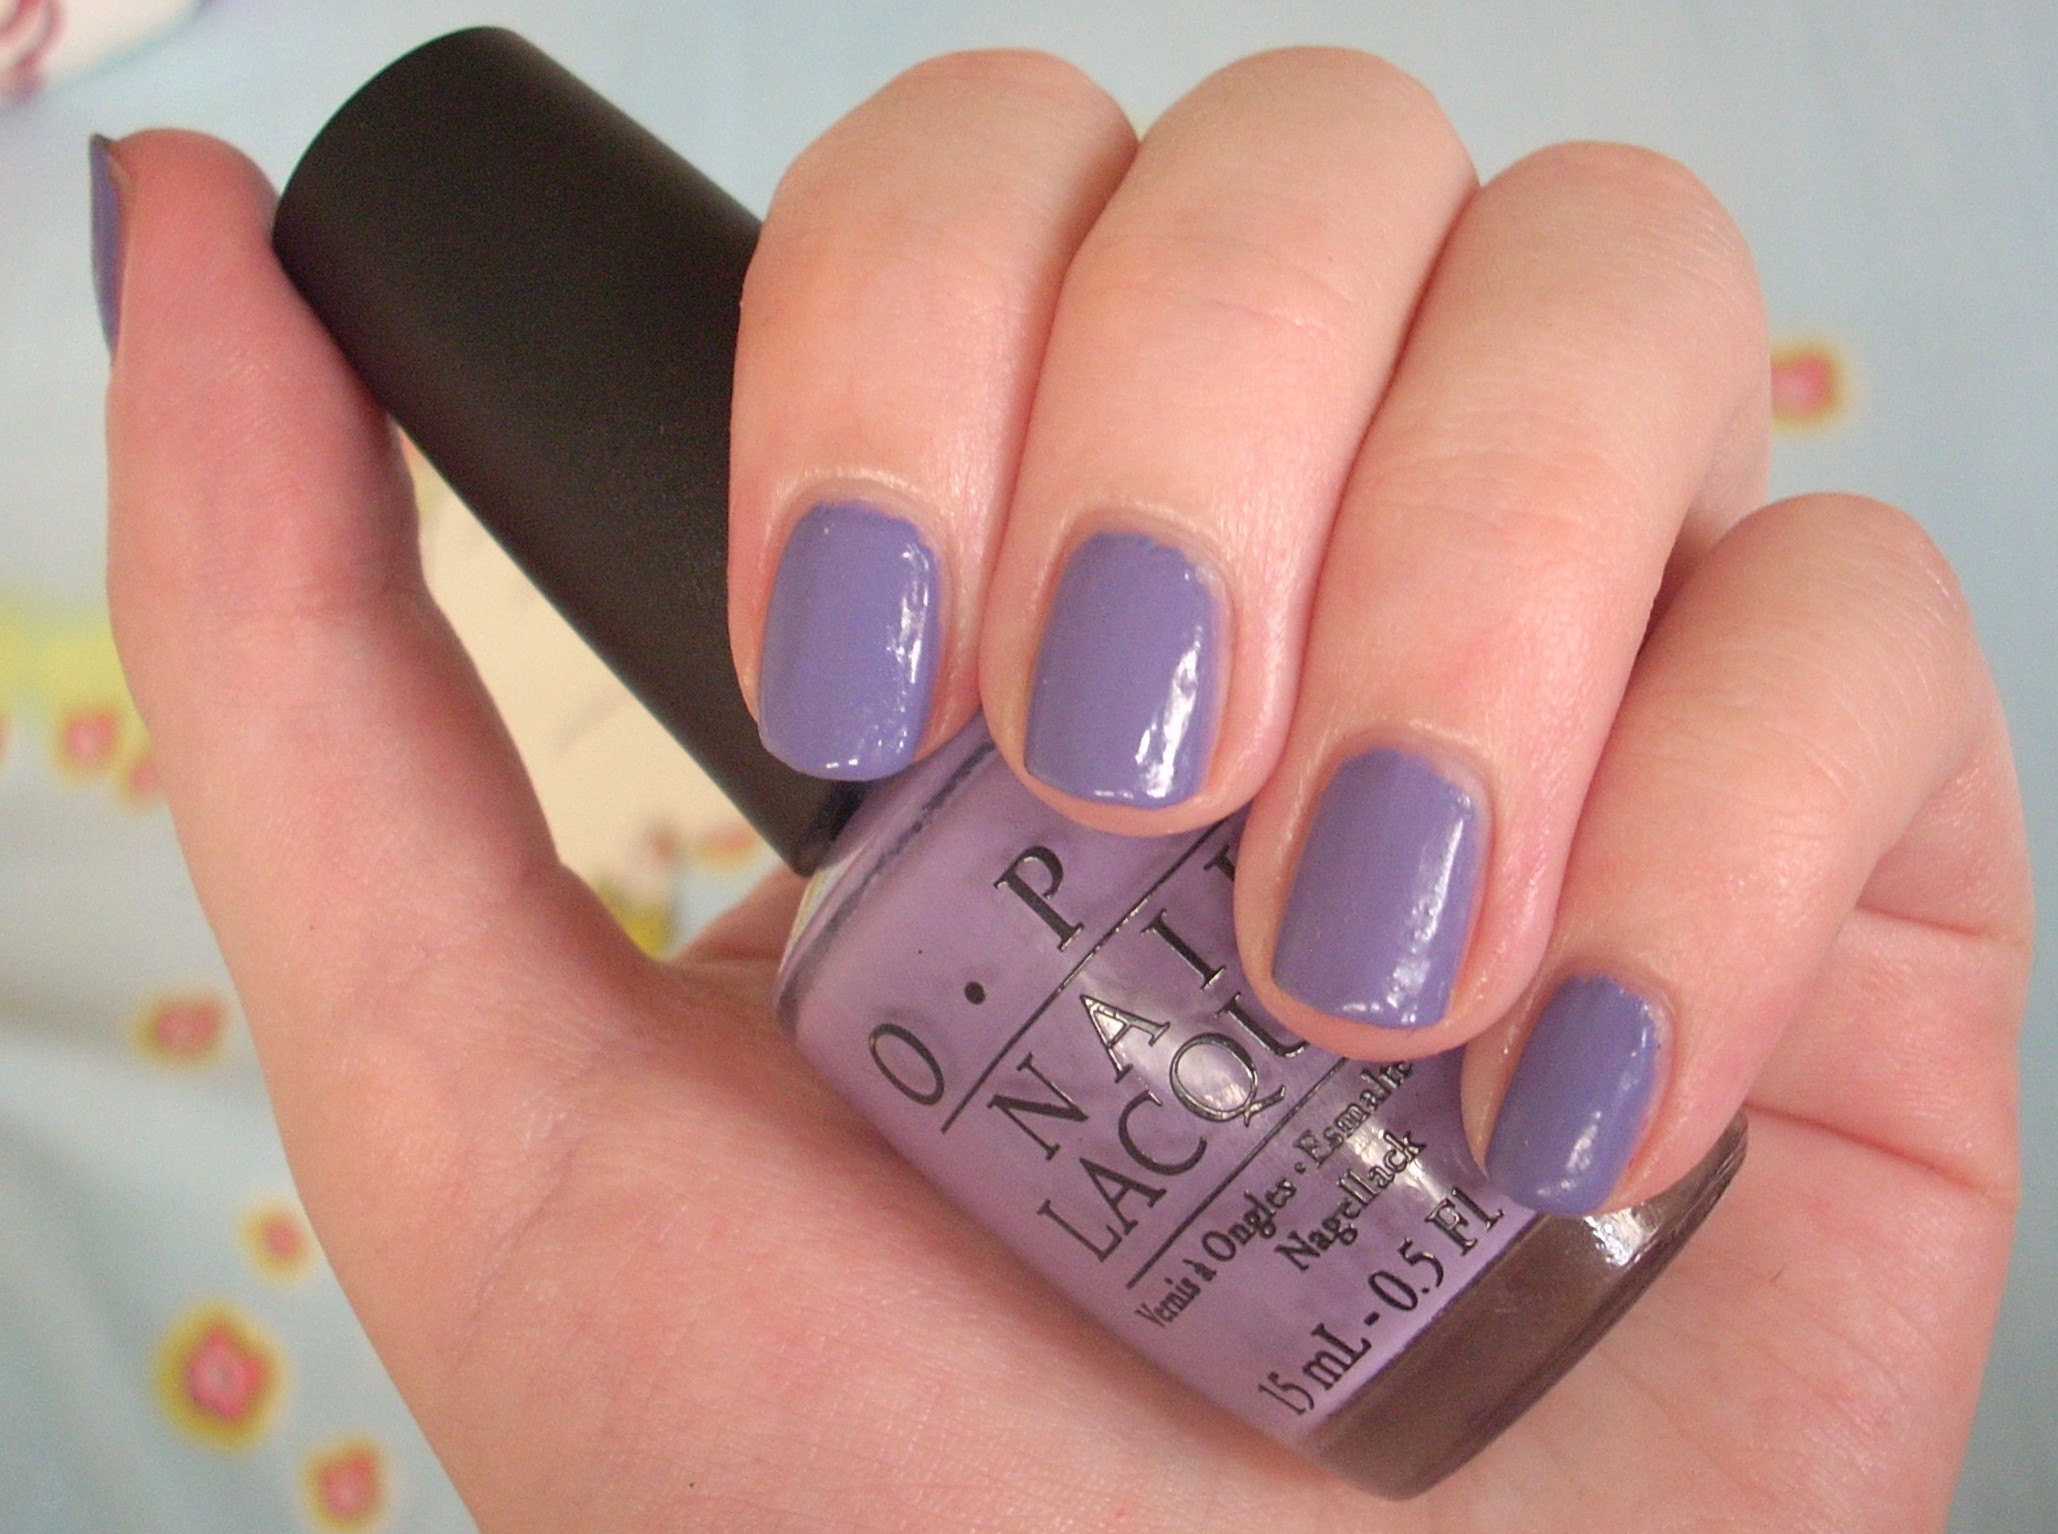 OPI Planks-A-Lot nail polish review | Through The Looking Glass